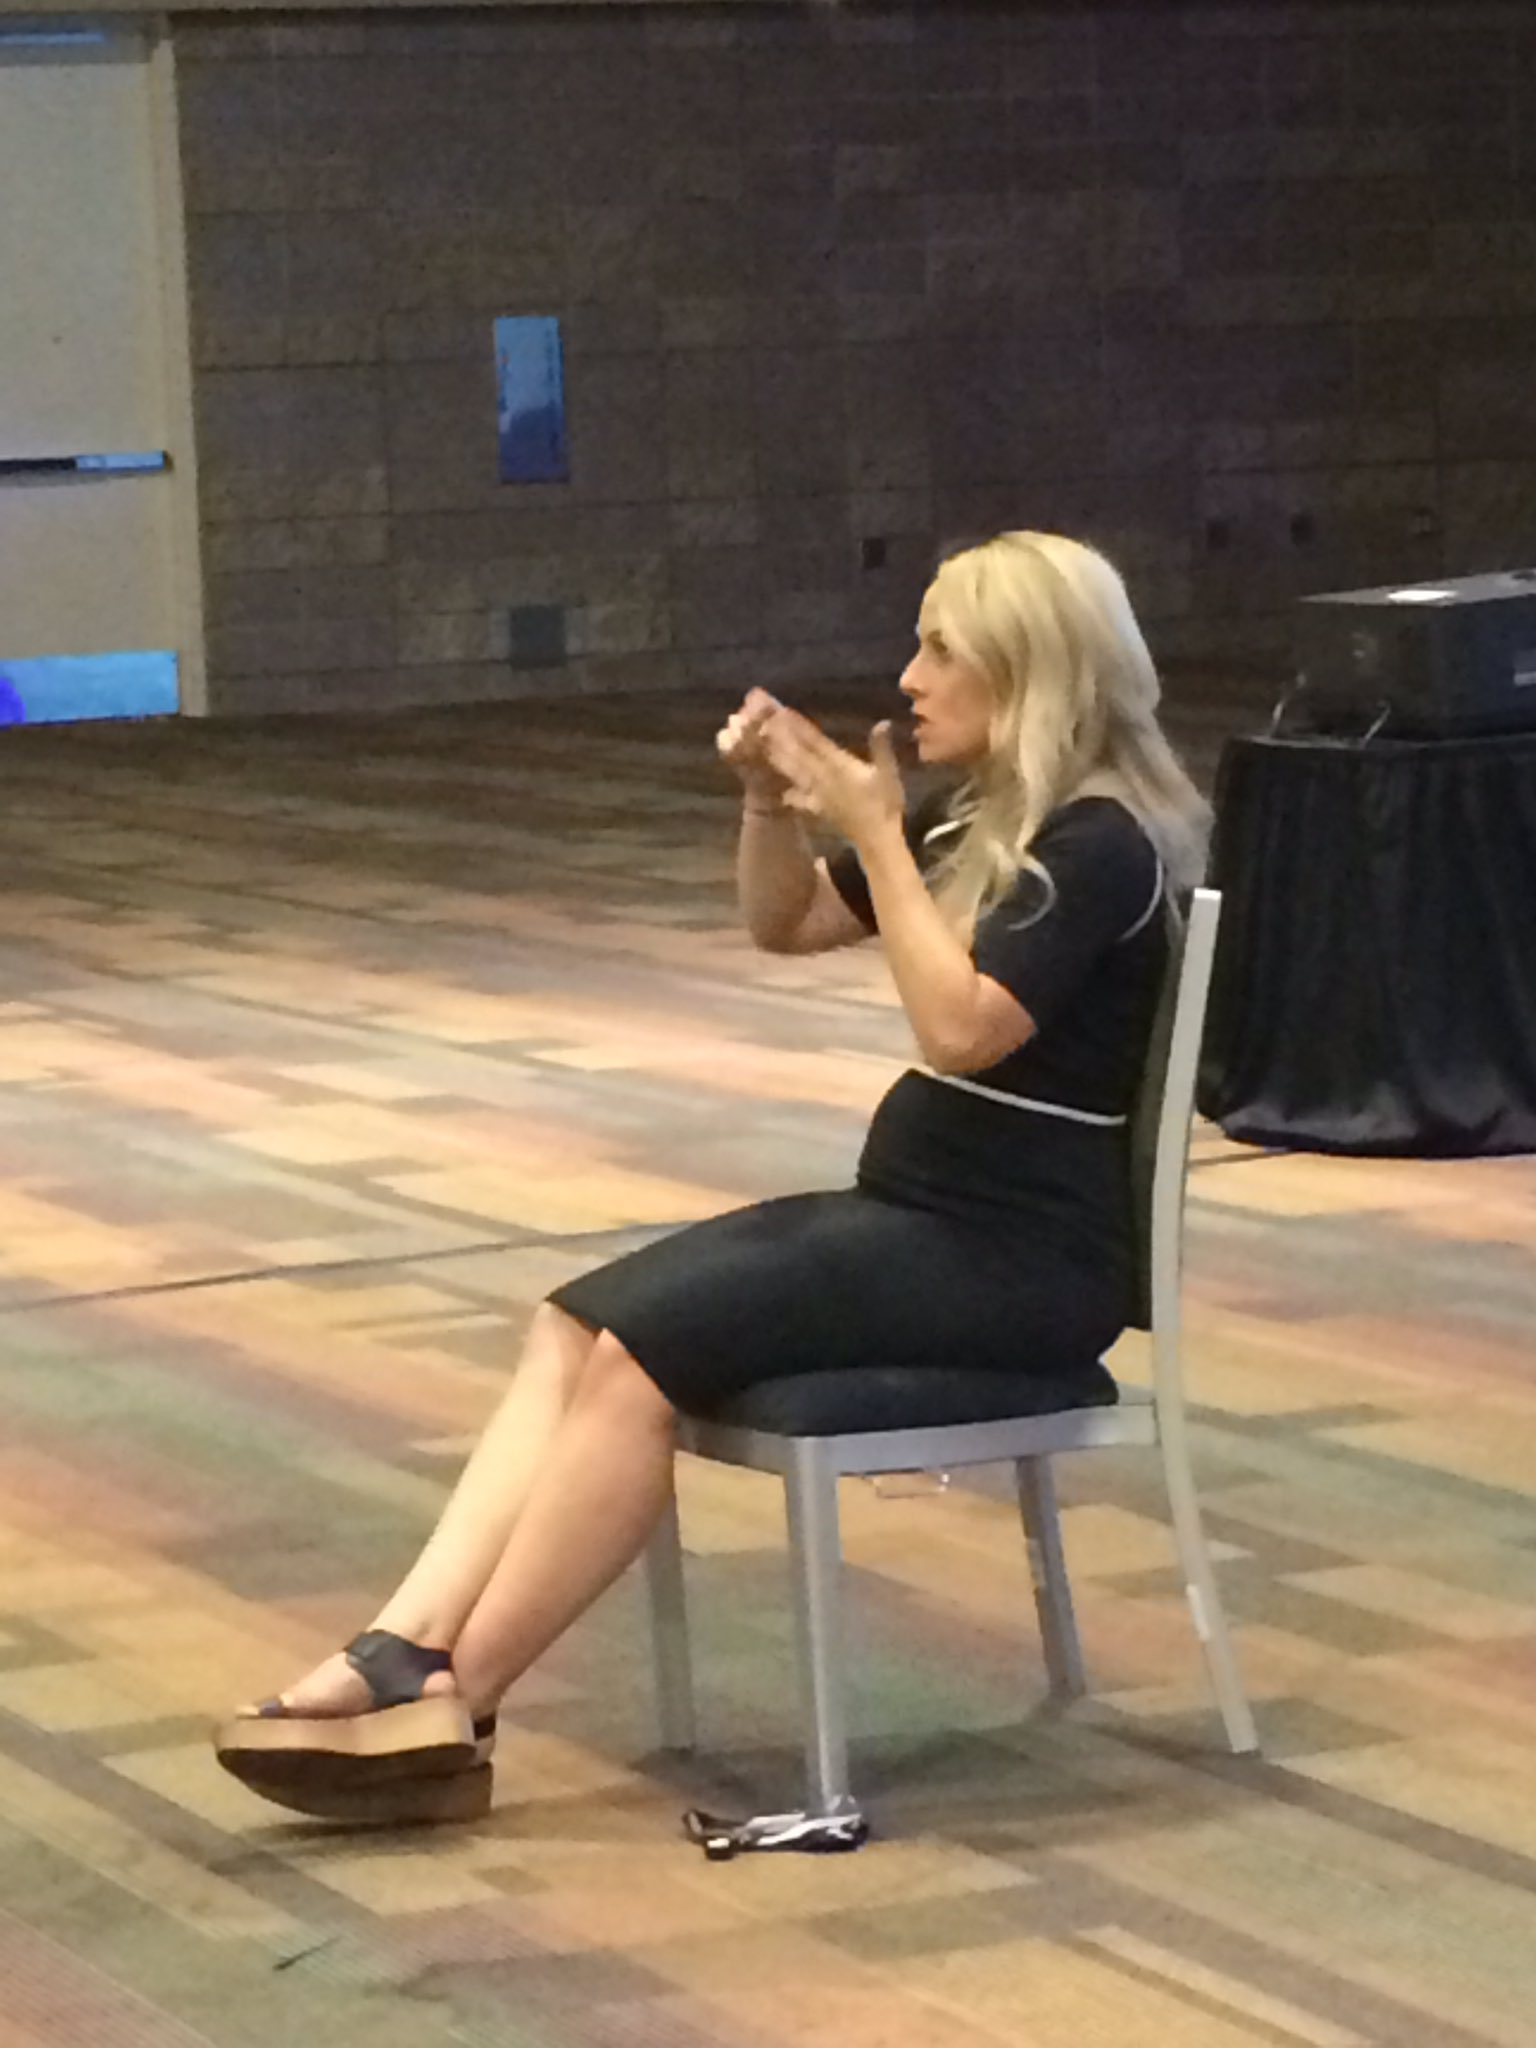 Wish I knew ASL to see how our interpreter does with the #presIgnite at #NCTMregionals. She'll be busy! https://t.co/gZp6ZUsZyO